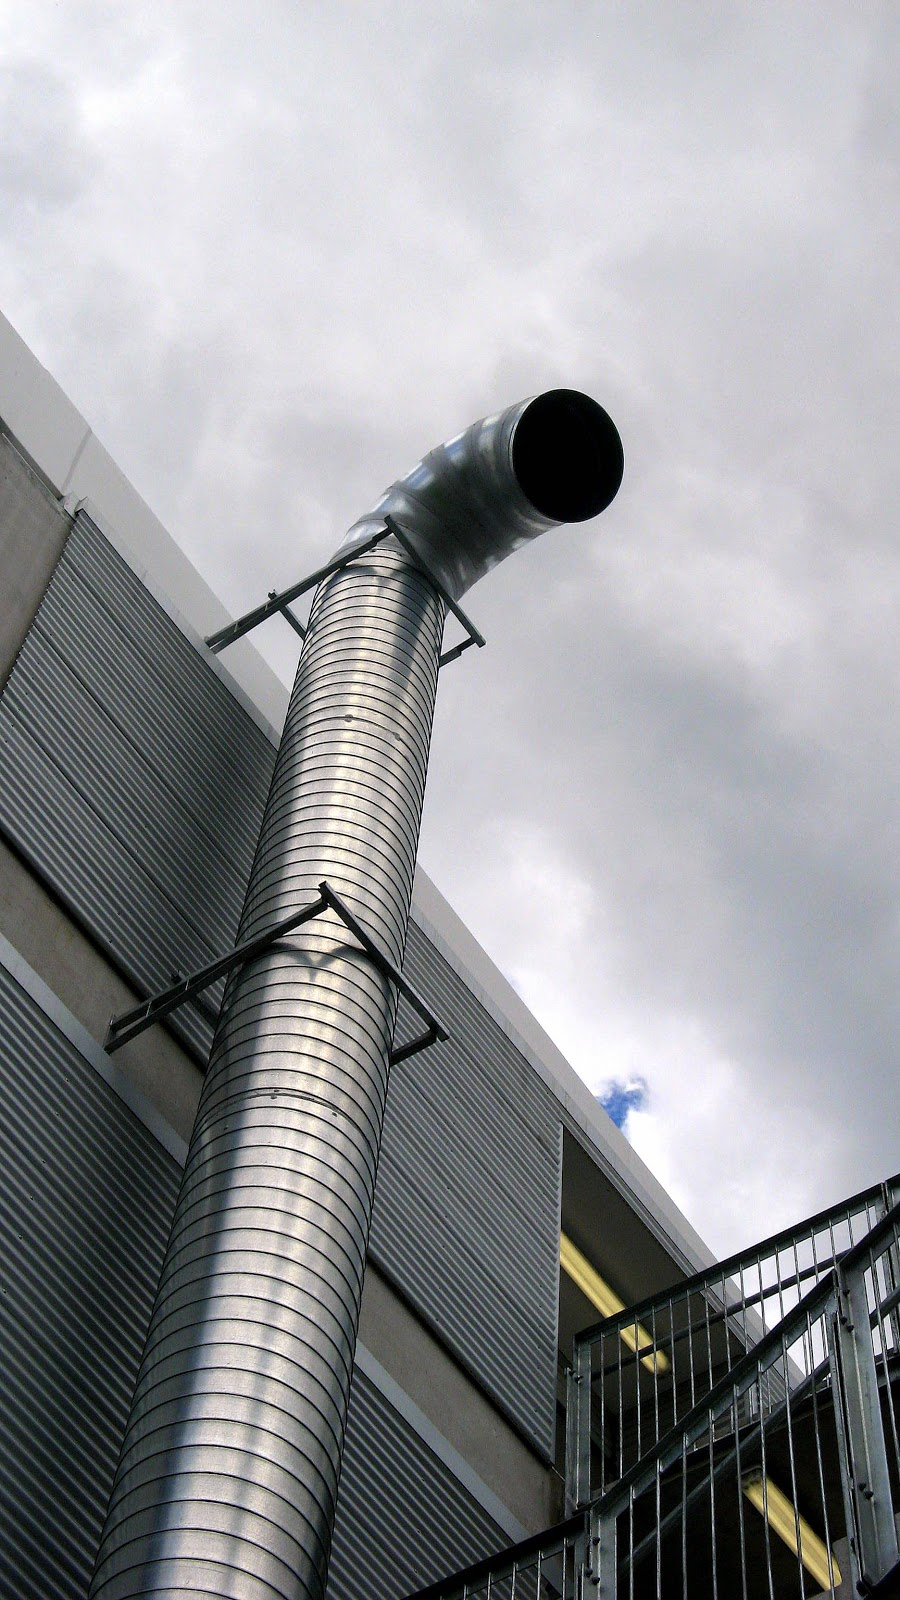 Hot Air Duct Fans : The paddock fso over your head